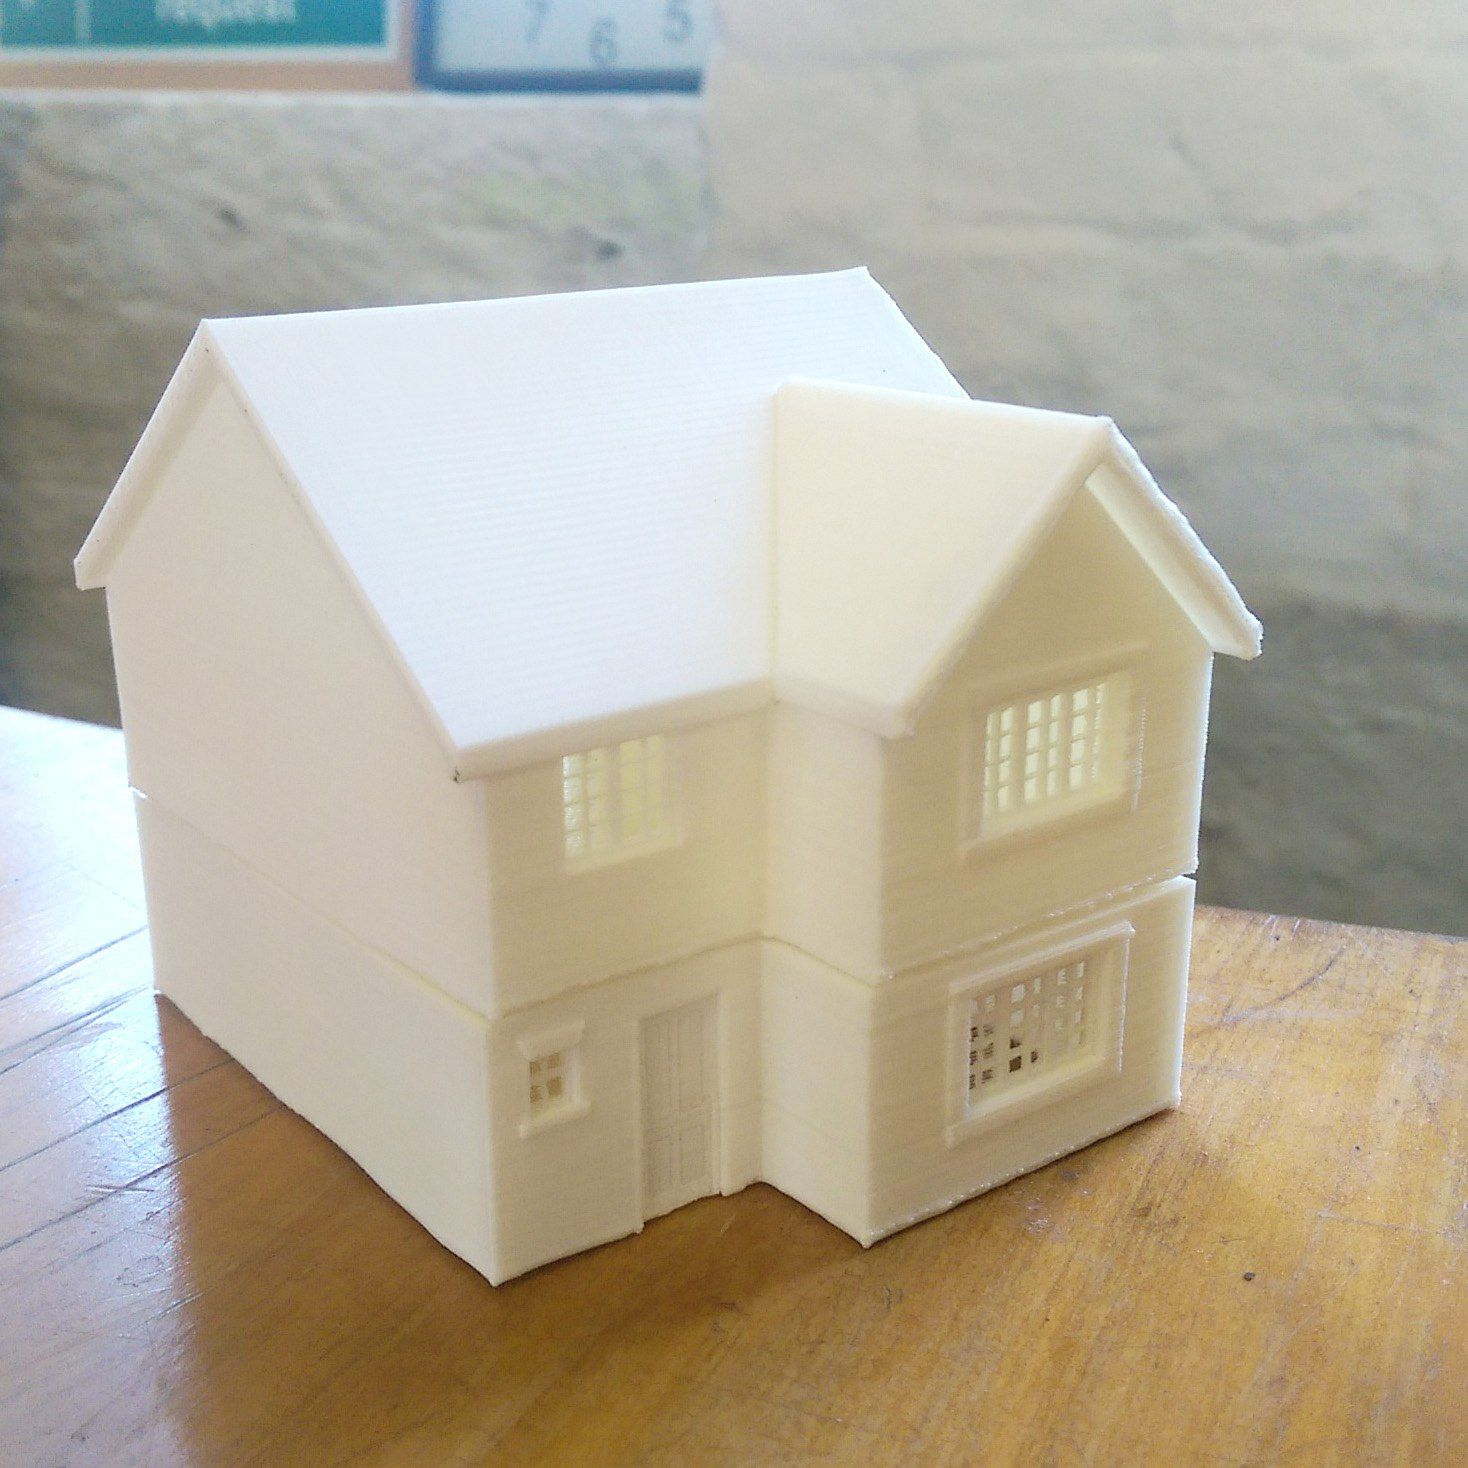 3D Scanning Printing 3D Printed Architecture Pinterest – Print House Plans